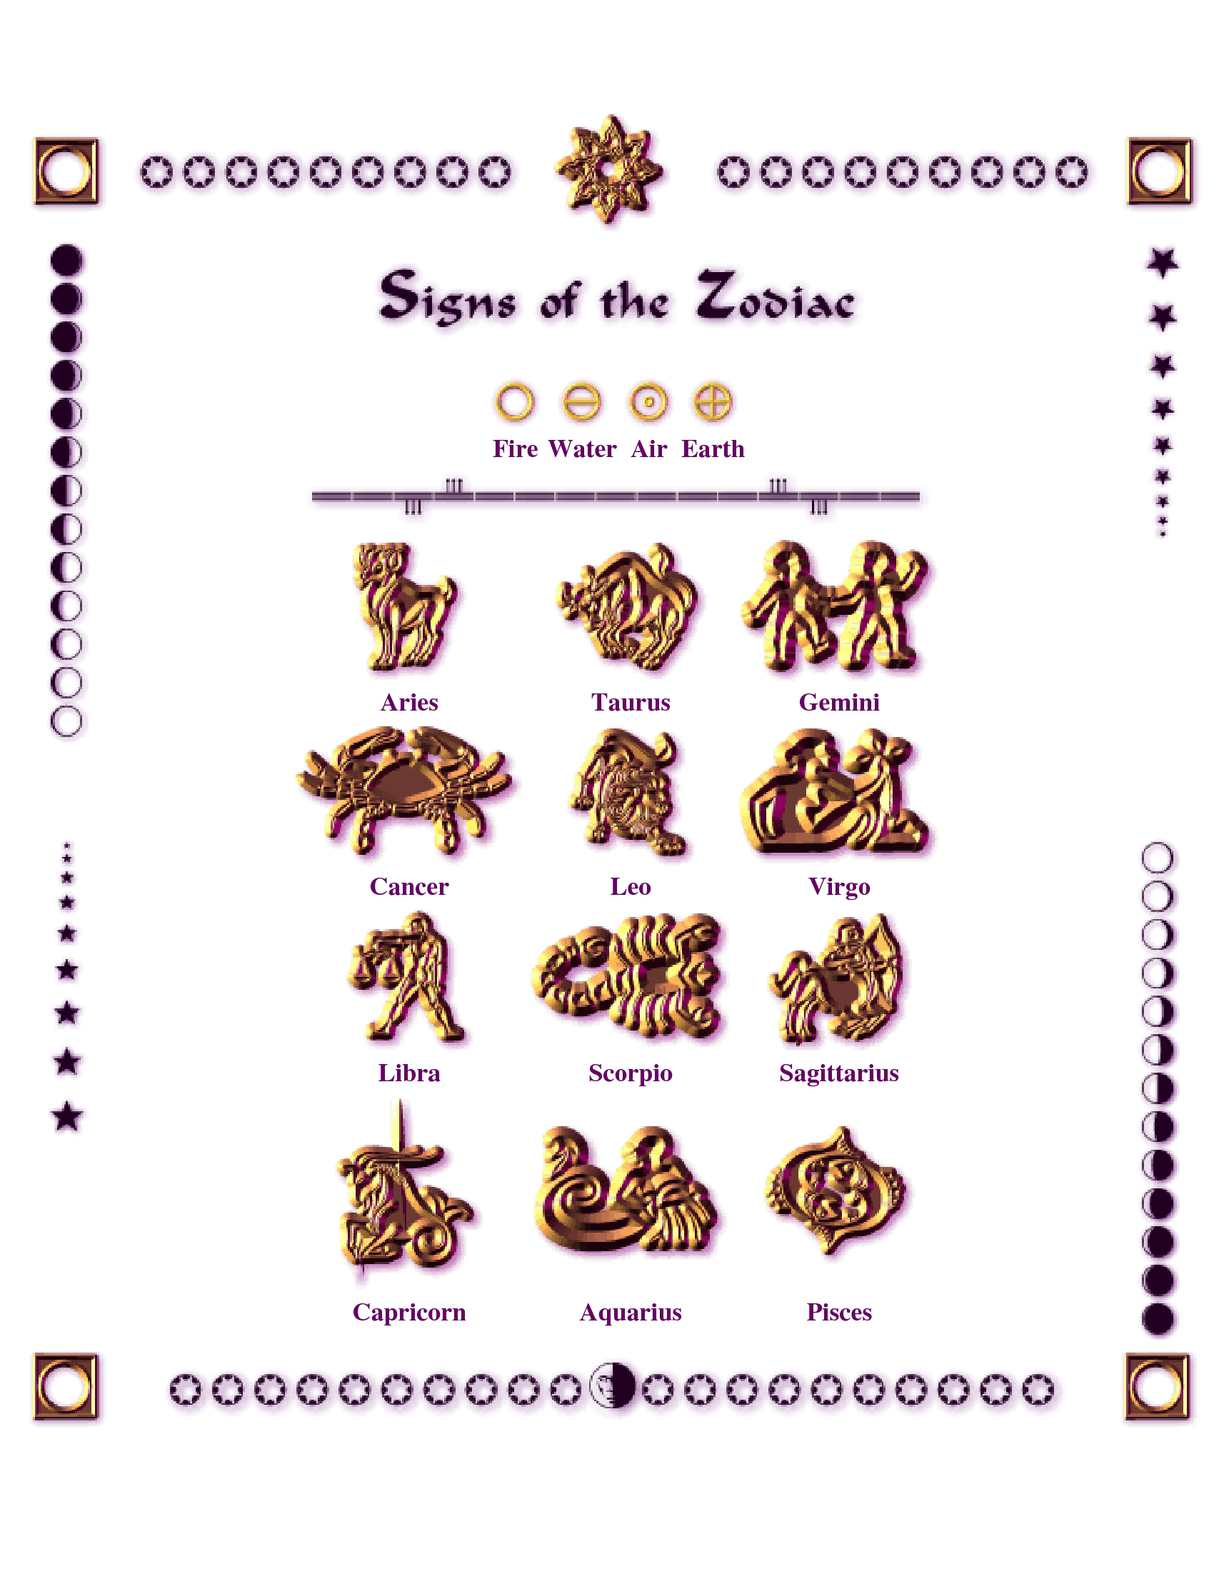 Exonumia Tokens: Other 1 Connect With Zodiac Erotic Token Coin Leo Yet Not Vulgar